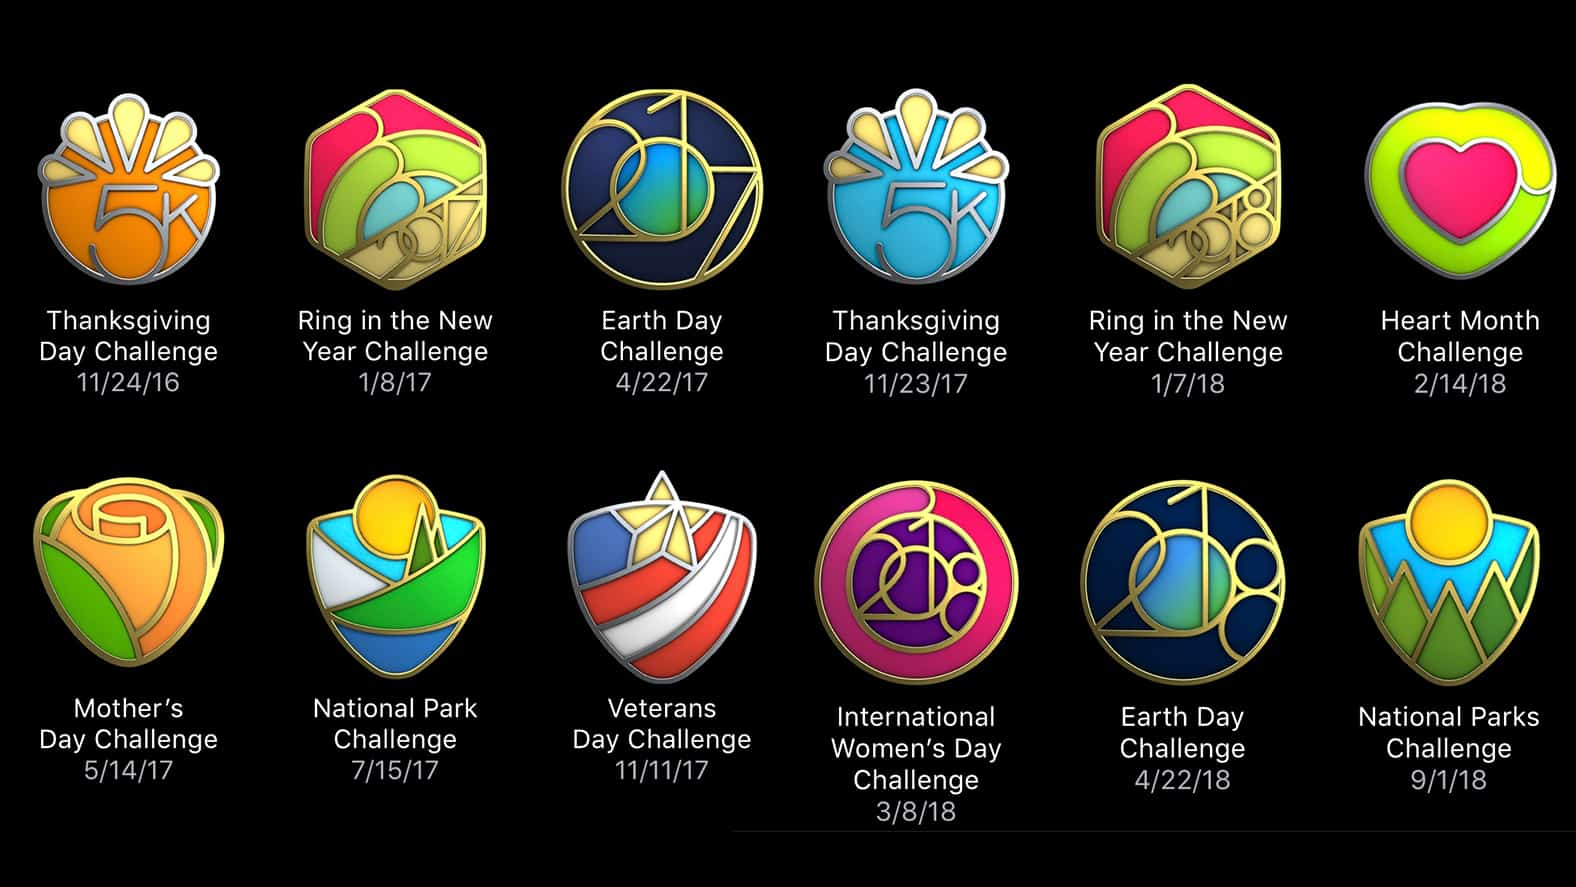 Activity badges for Apple Watch challenges